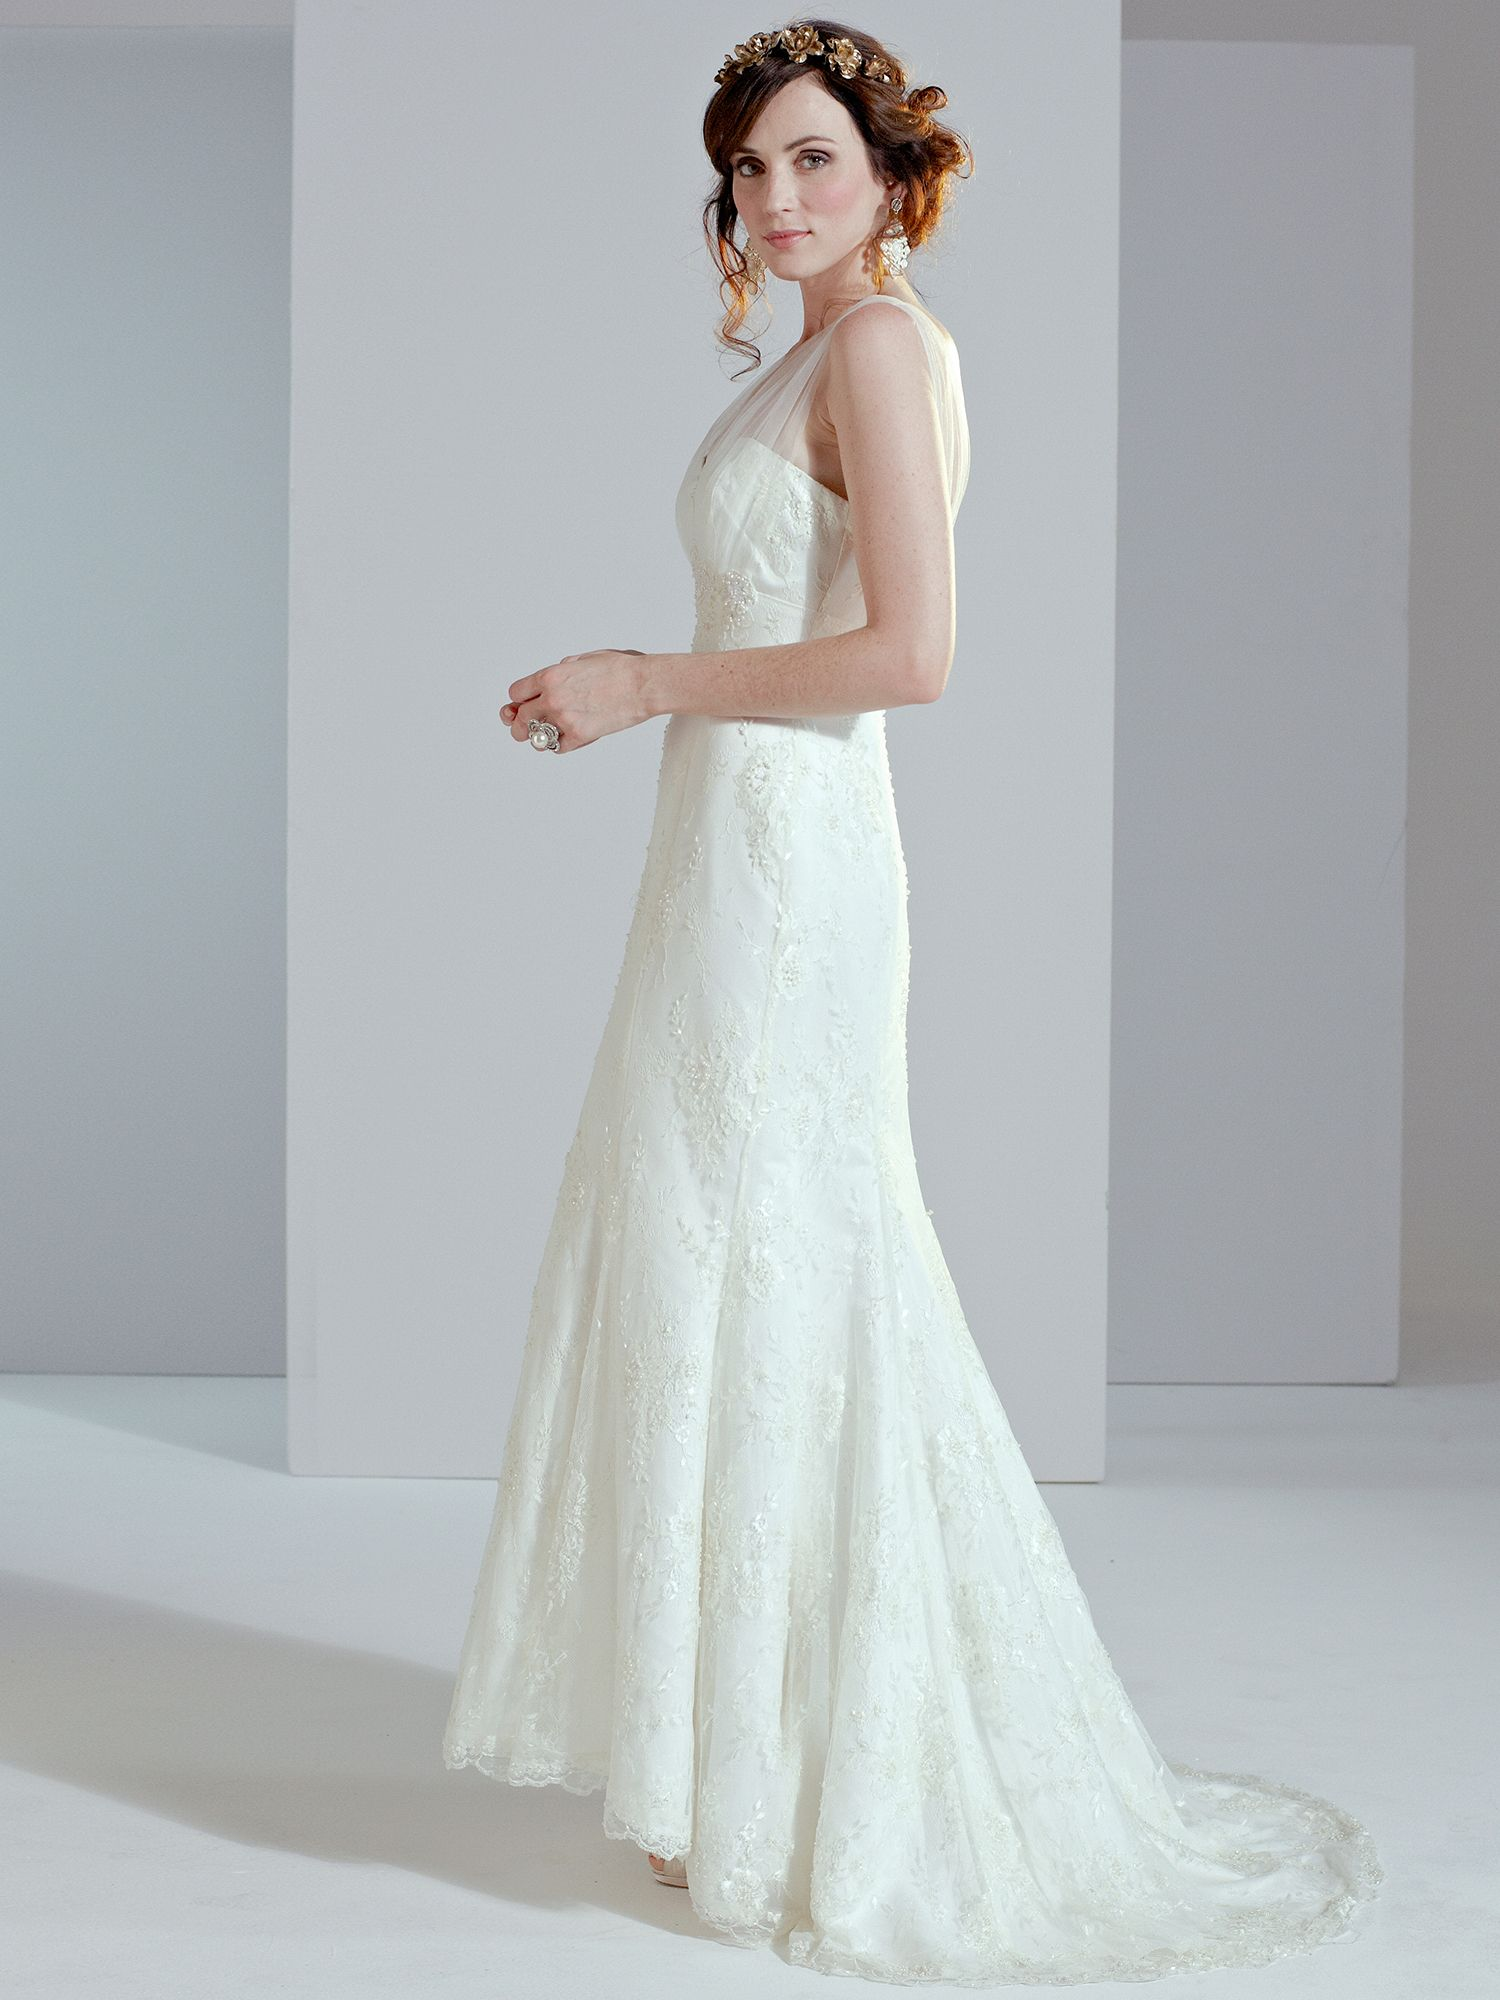 Elodie wedding dress